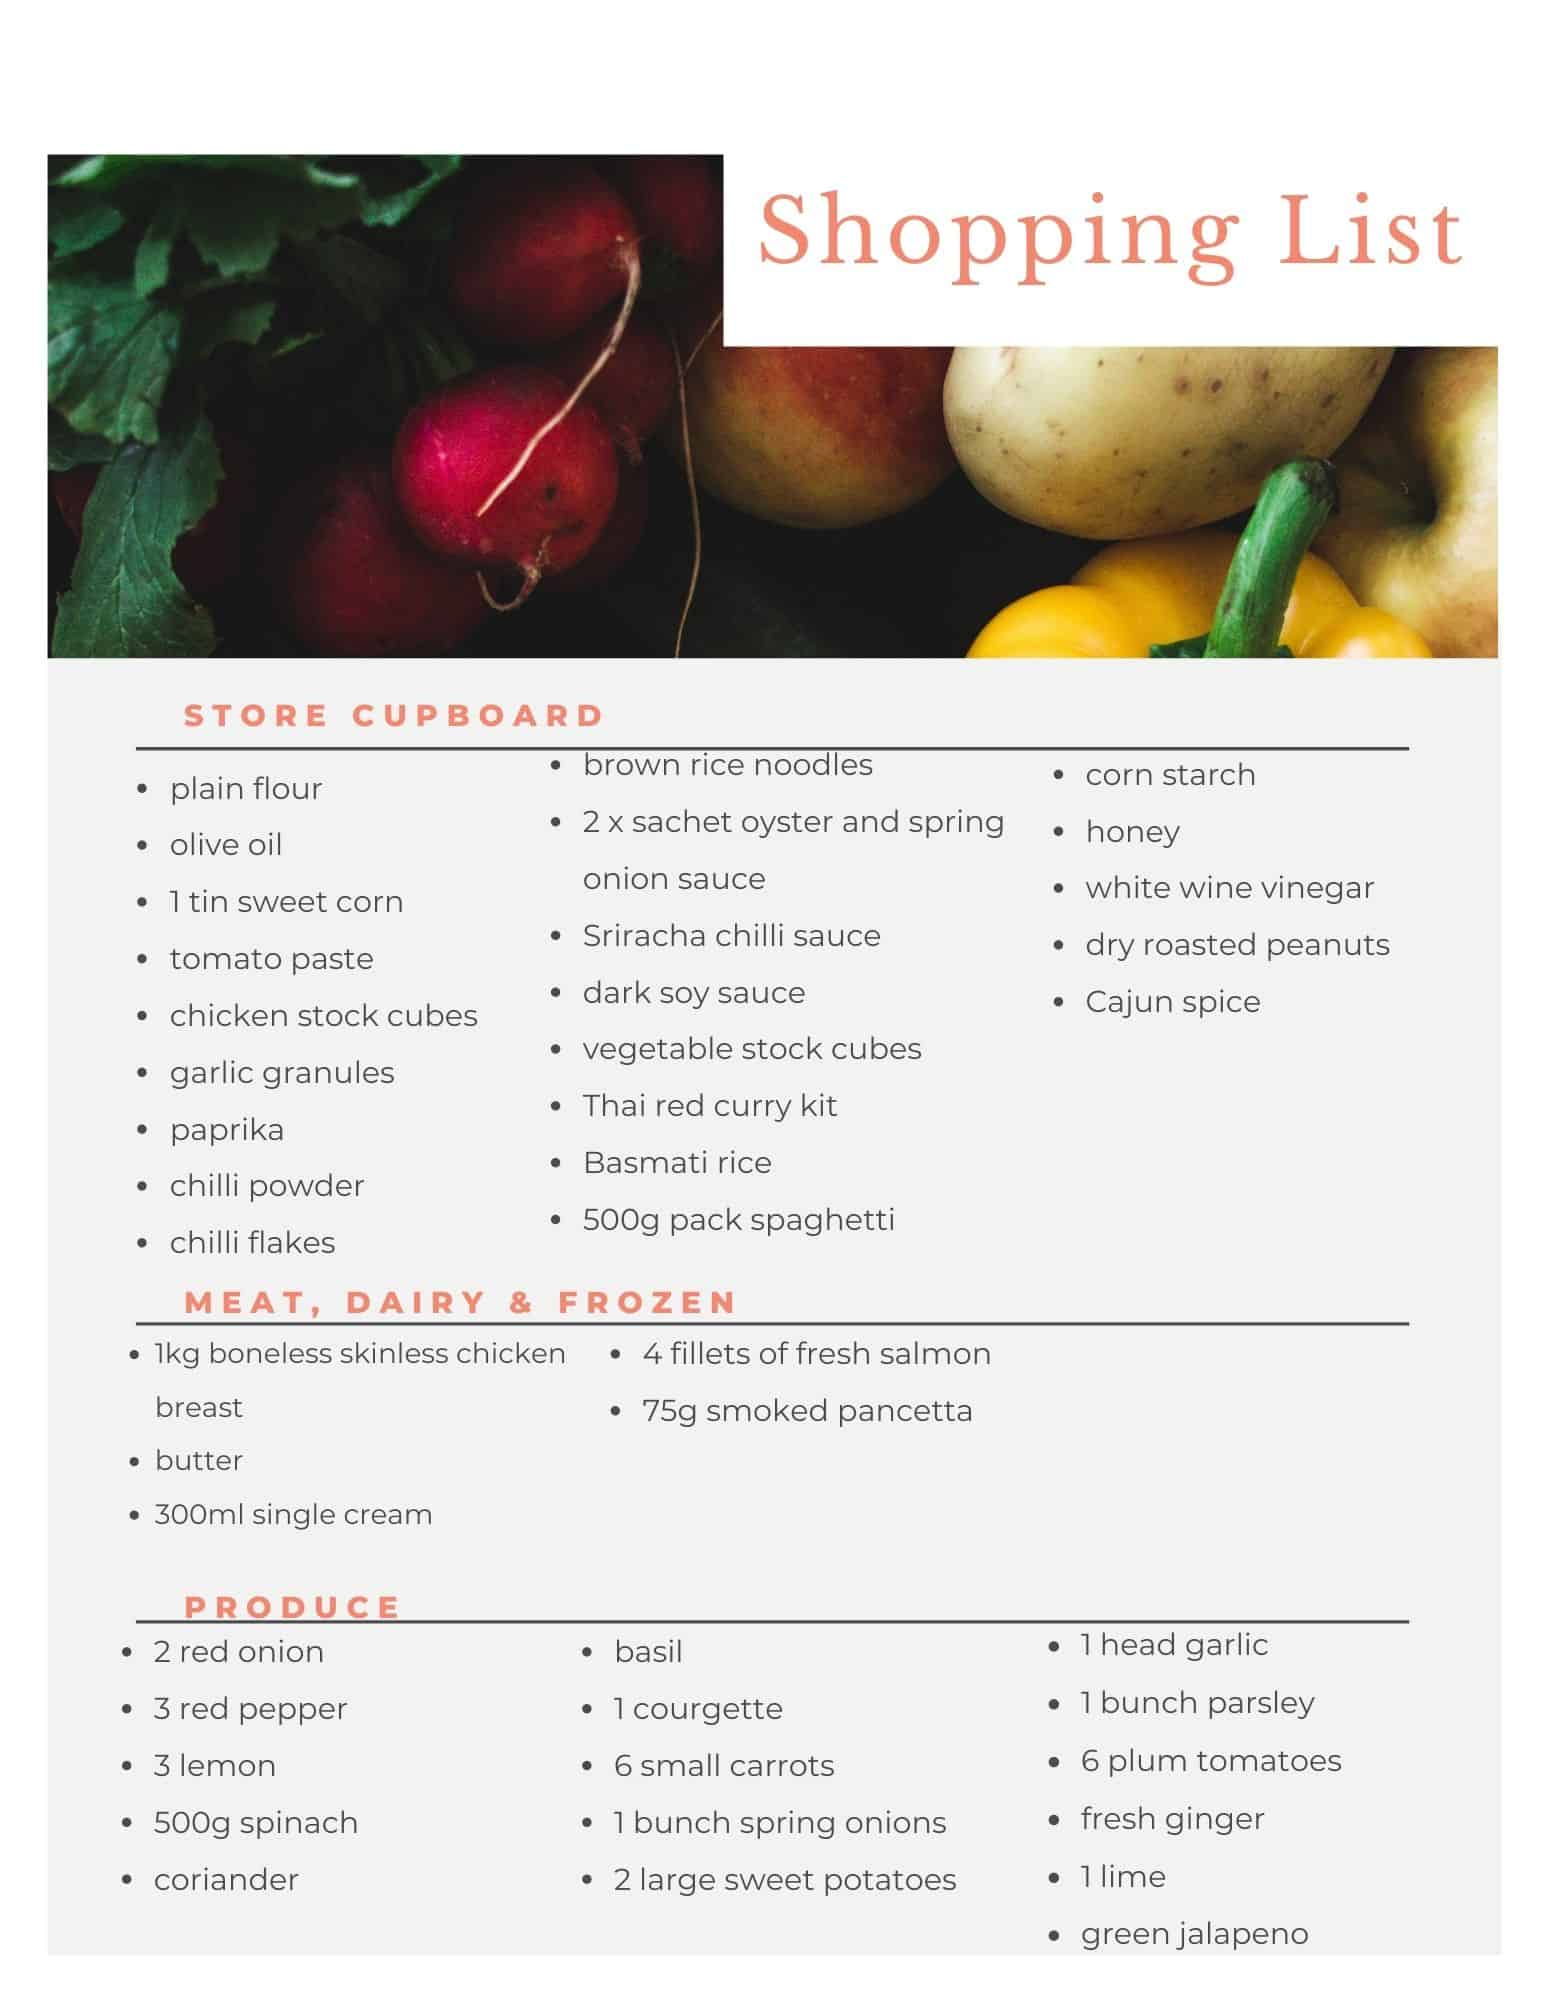 free printable shopping list for Aldi meal plan.